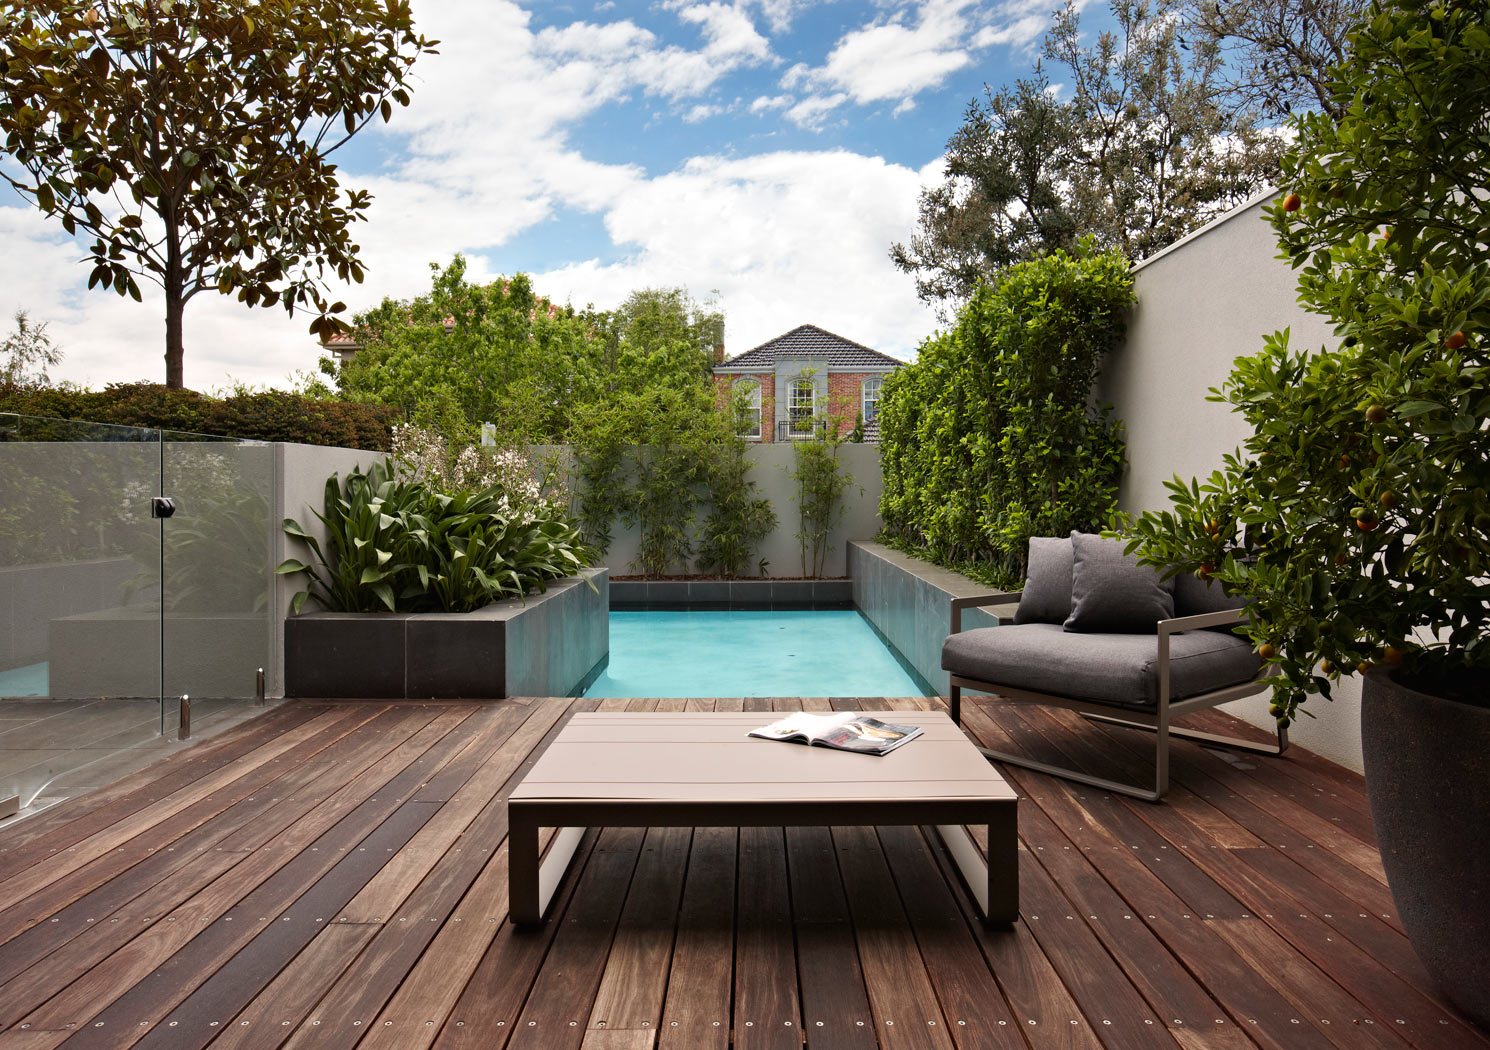 Landscape design melbourne nathan burkett design for Landscape construction melbourne